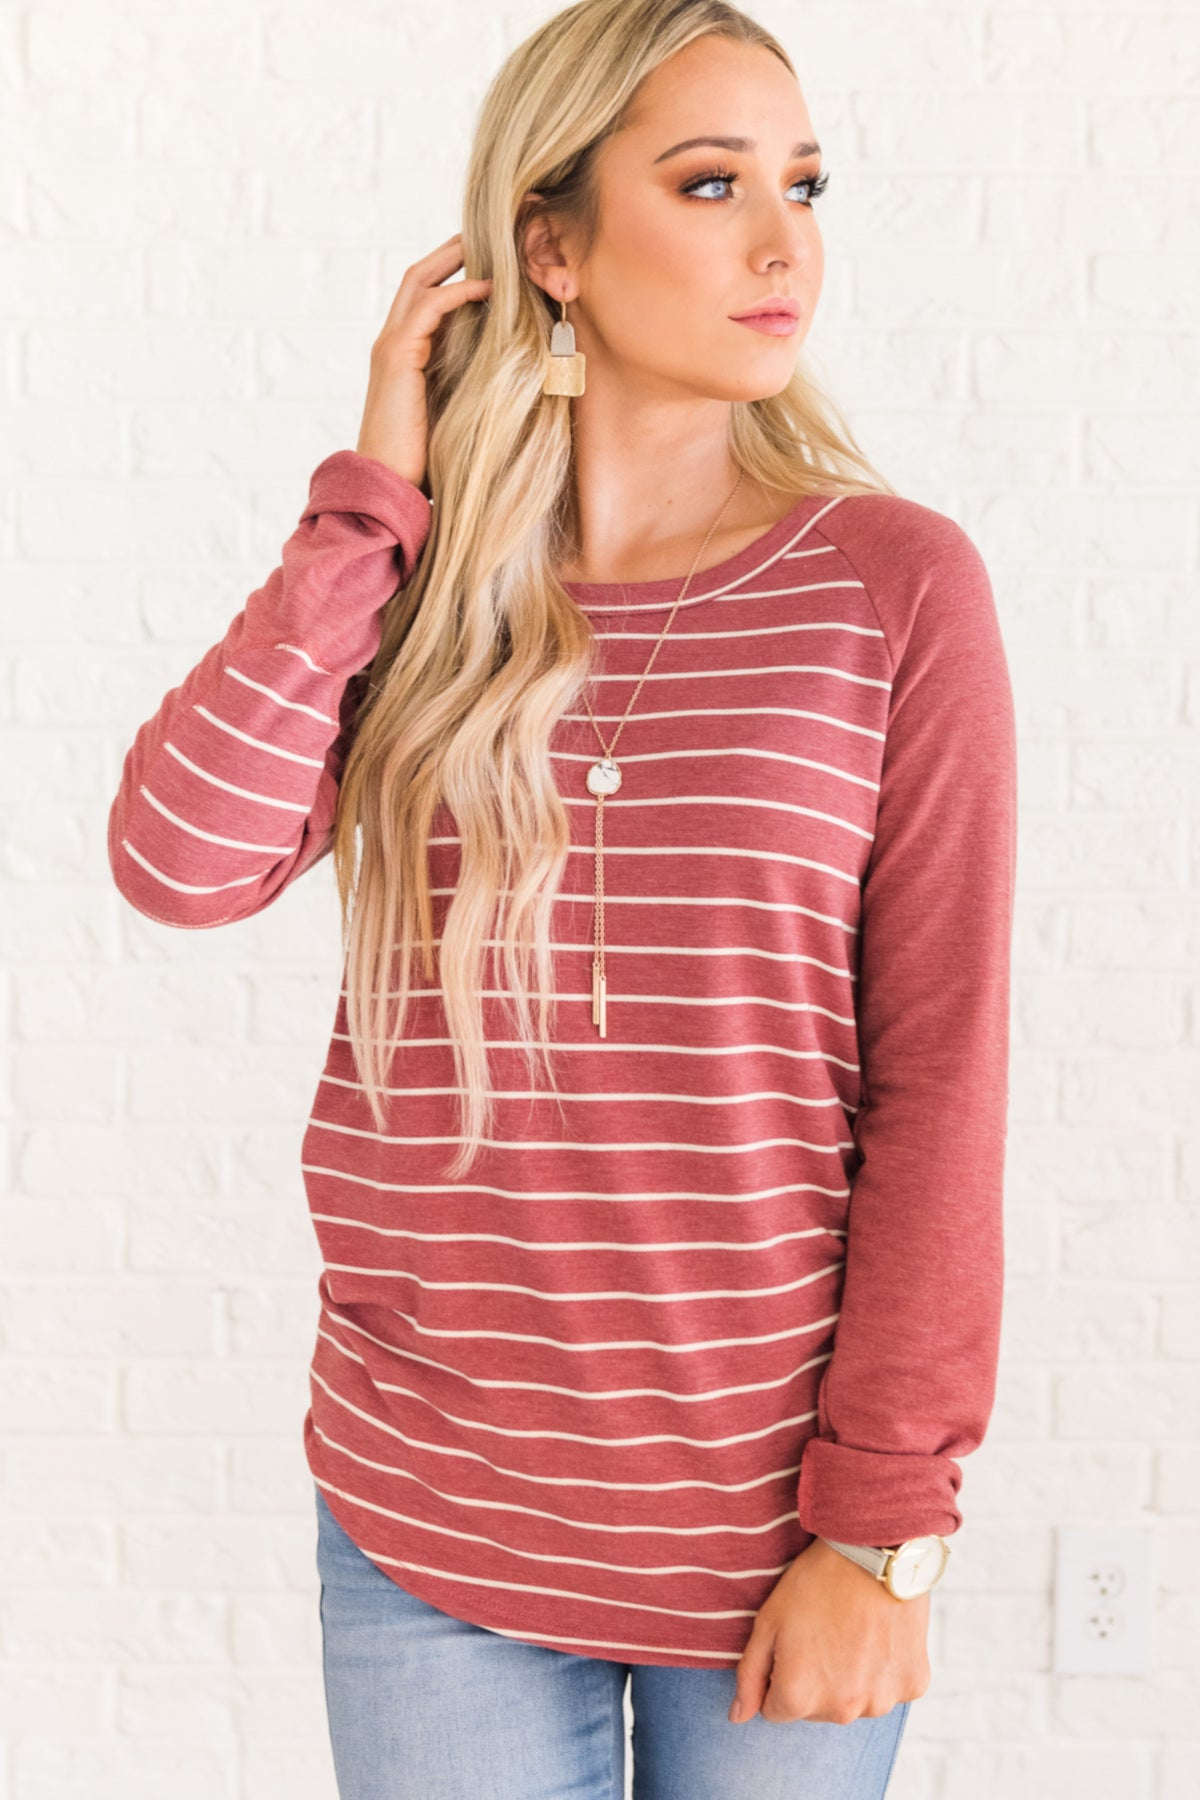 Marsala Red Cute Long Sleeve Raglan Baseball Striped Elbow Patch Tops